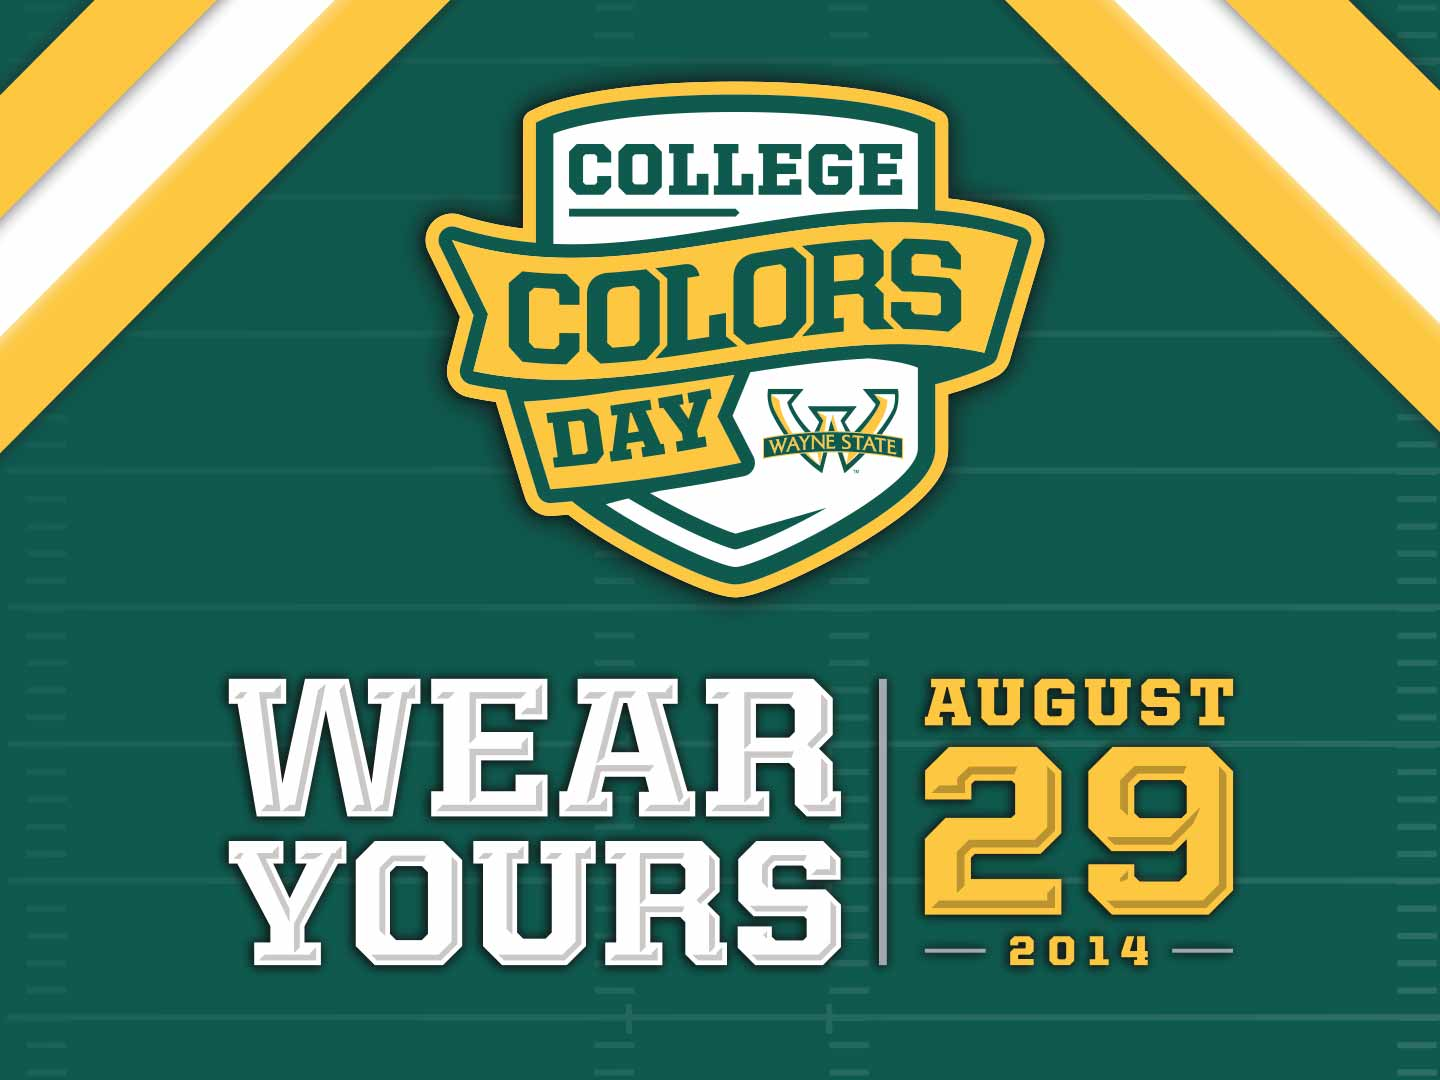 Show your Warrior pride and wear green and gold!